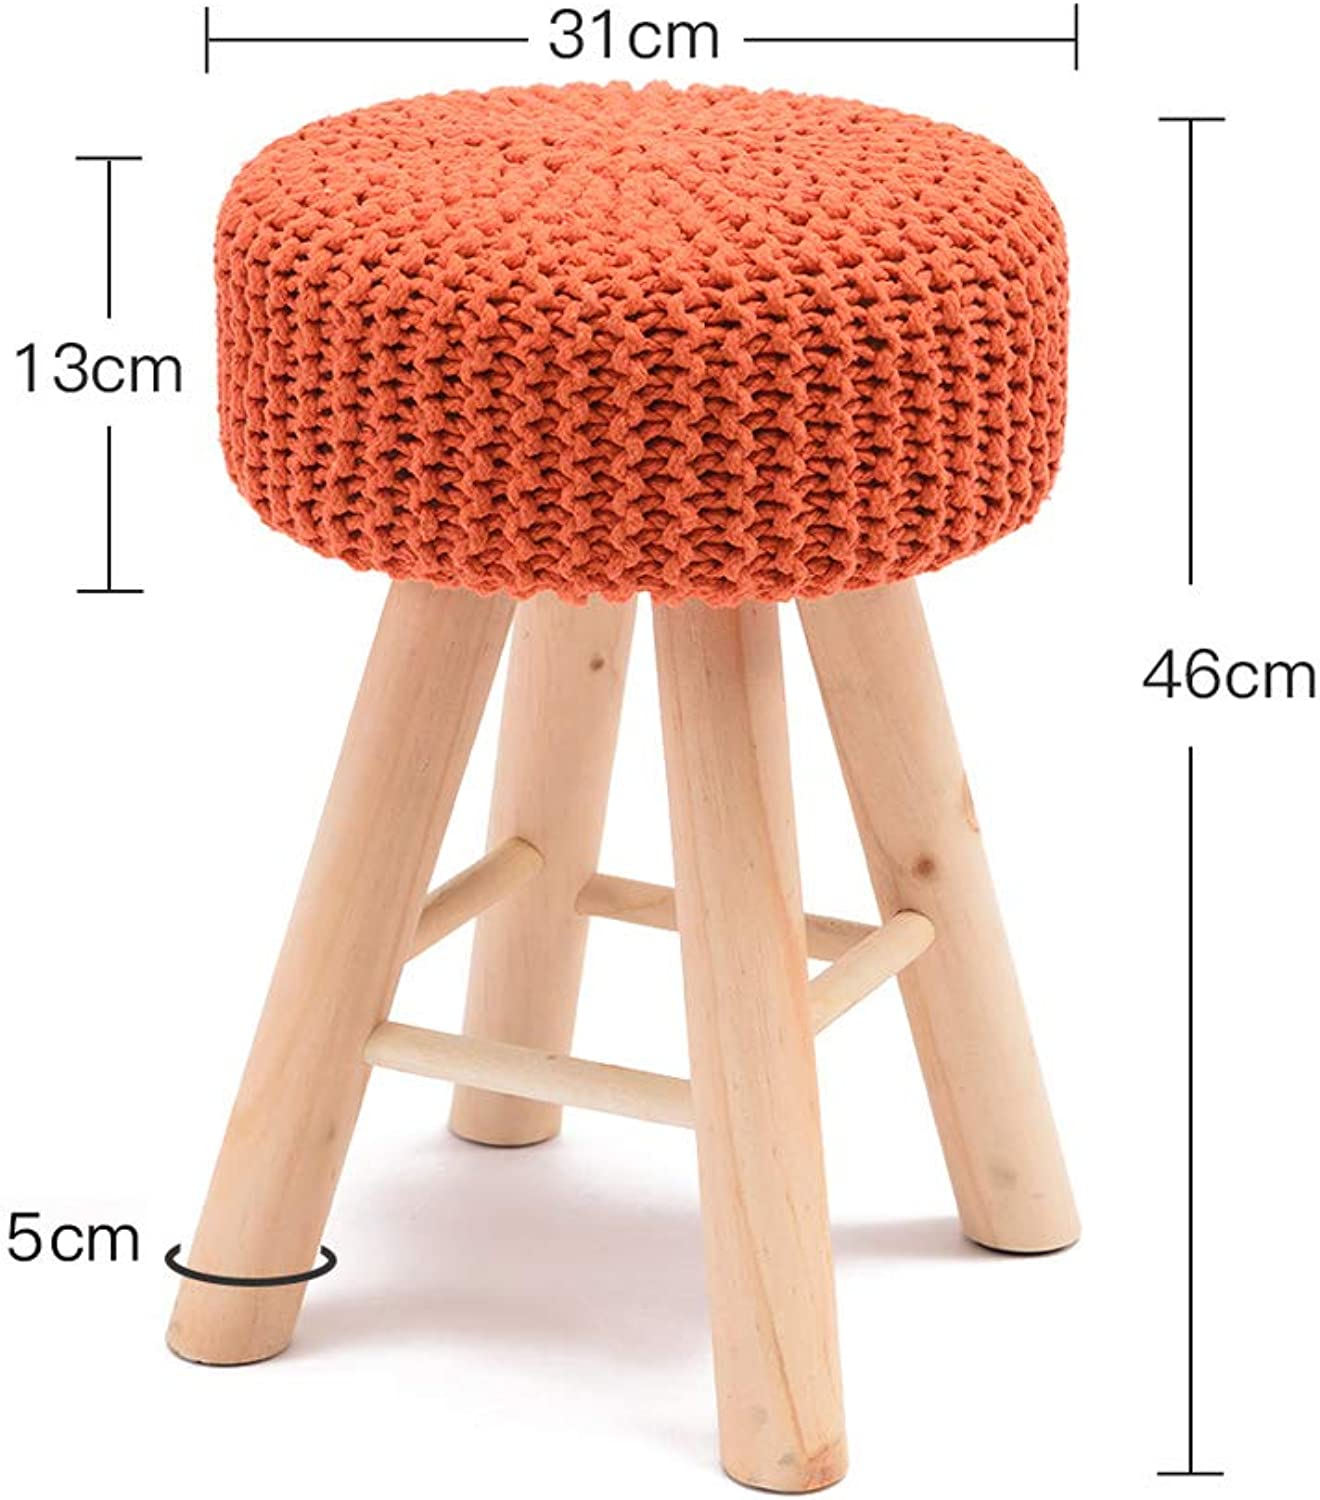 MXD Stool Solid Wood Stool Fashion Sofa Stool Creative Dressing Stool Modern Small Round Stool Home Makeup Stool Bench Small Chair (color   orange)